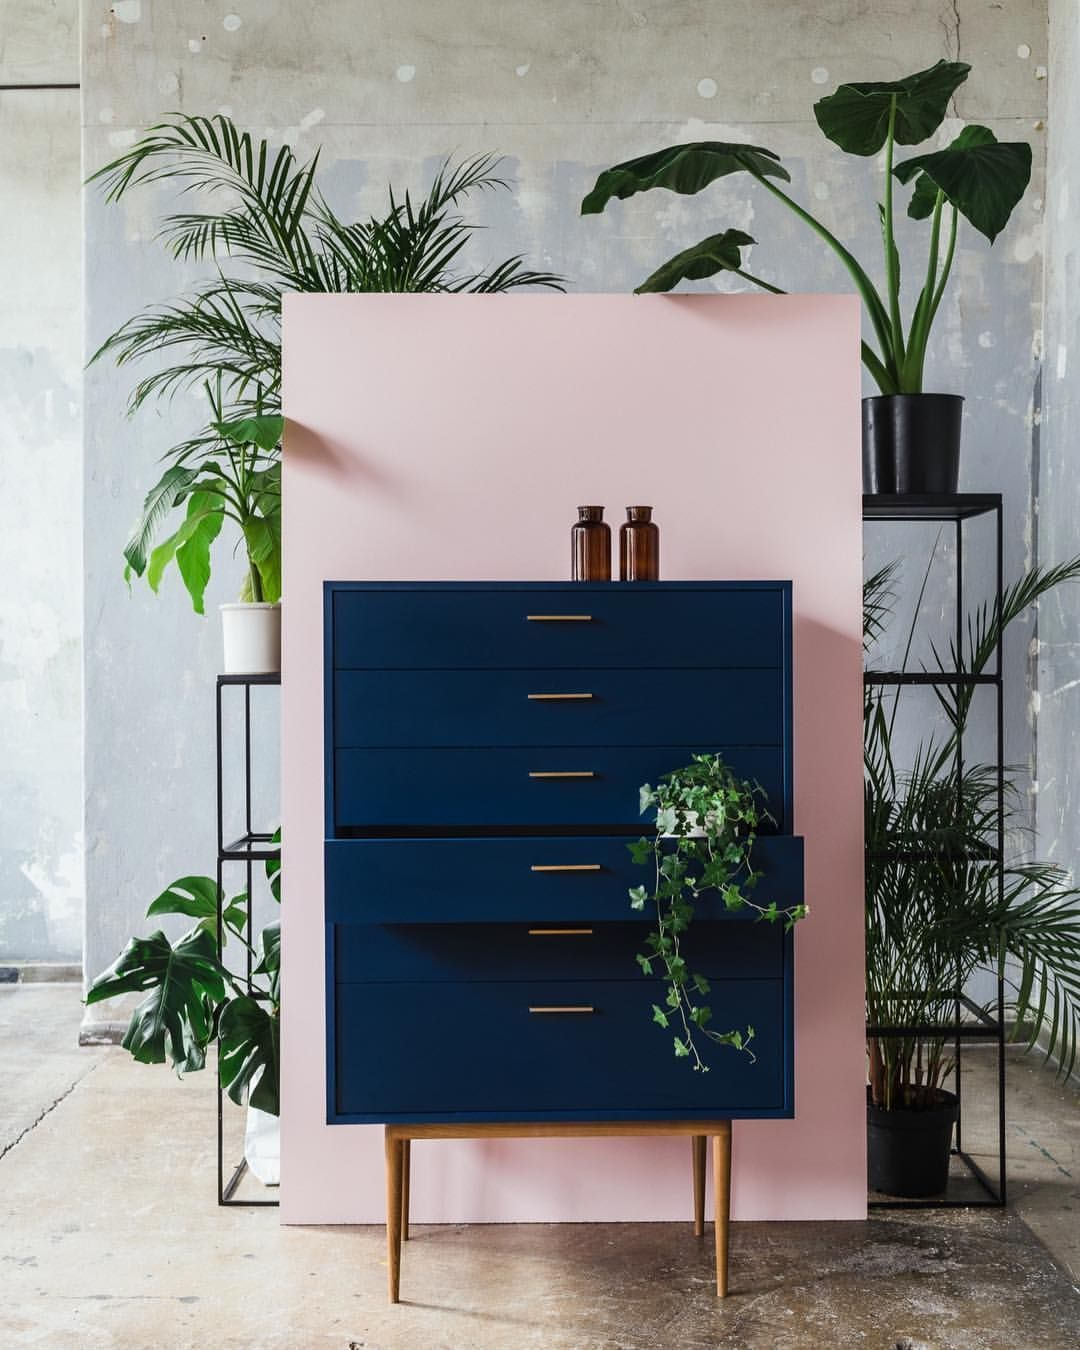 Home decor inspiration furniture lounges bedroom decoration ideas furnishing inspiring homes also pink wall with dark blue dresser rh pinterest